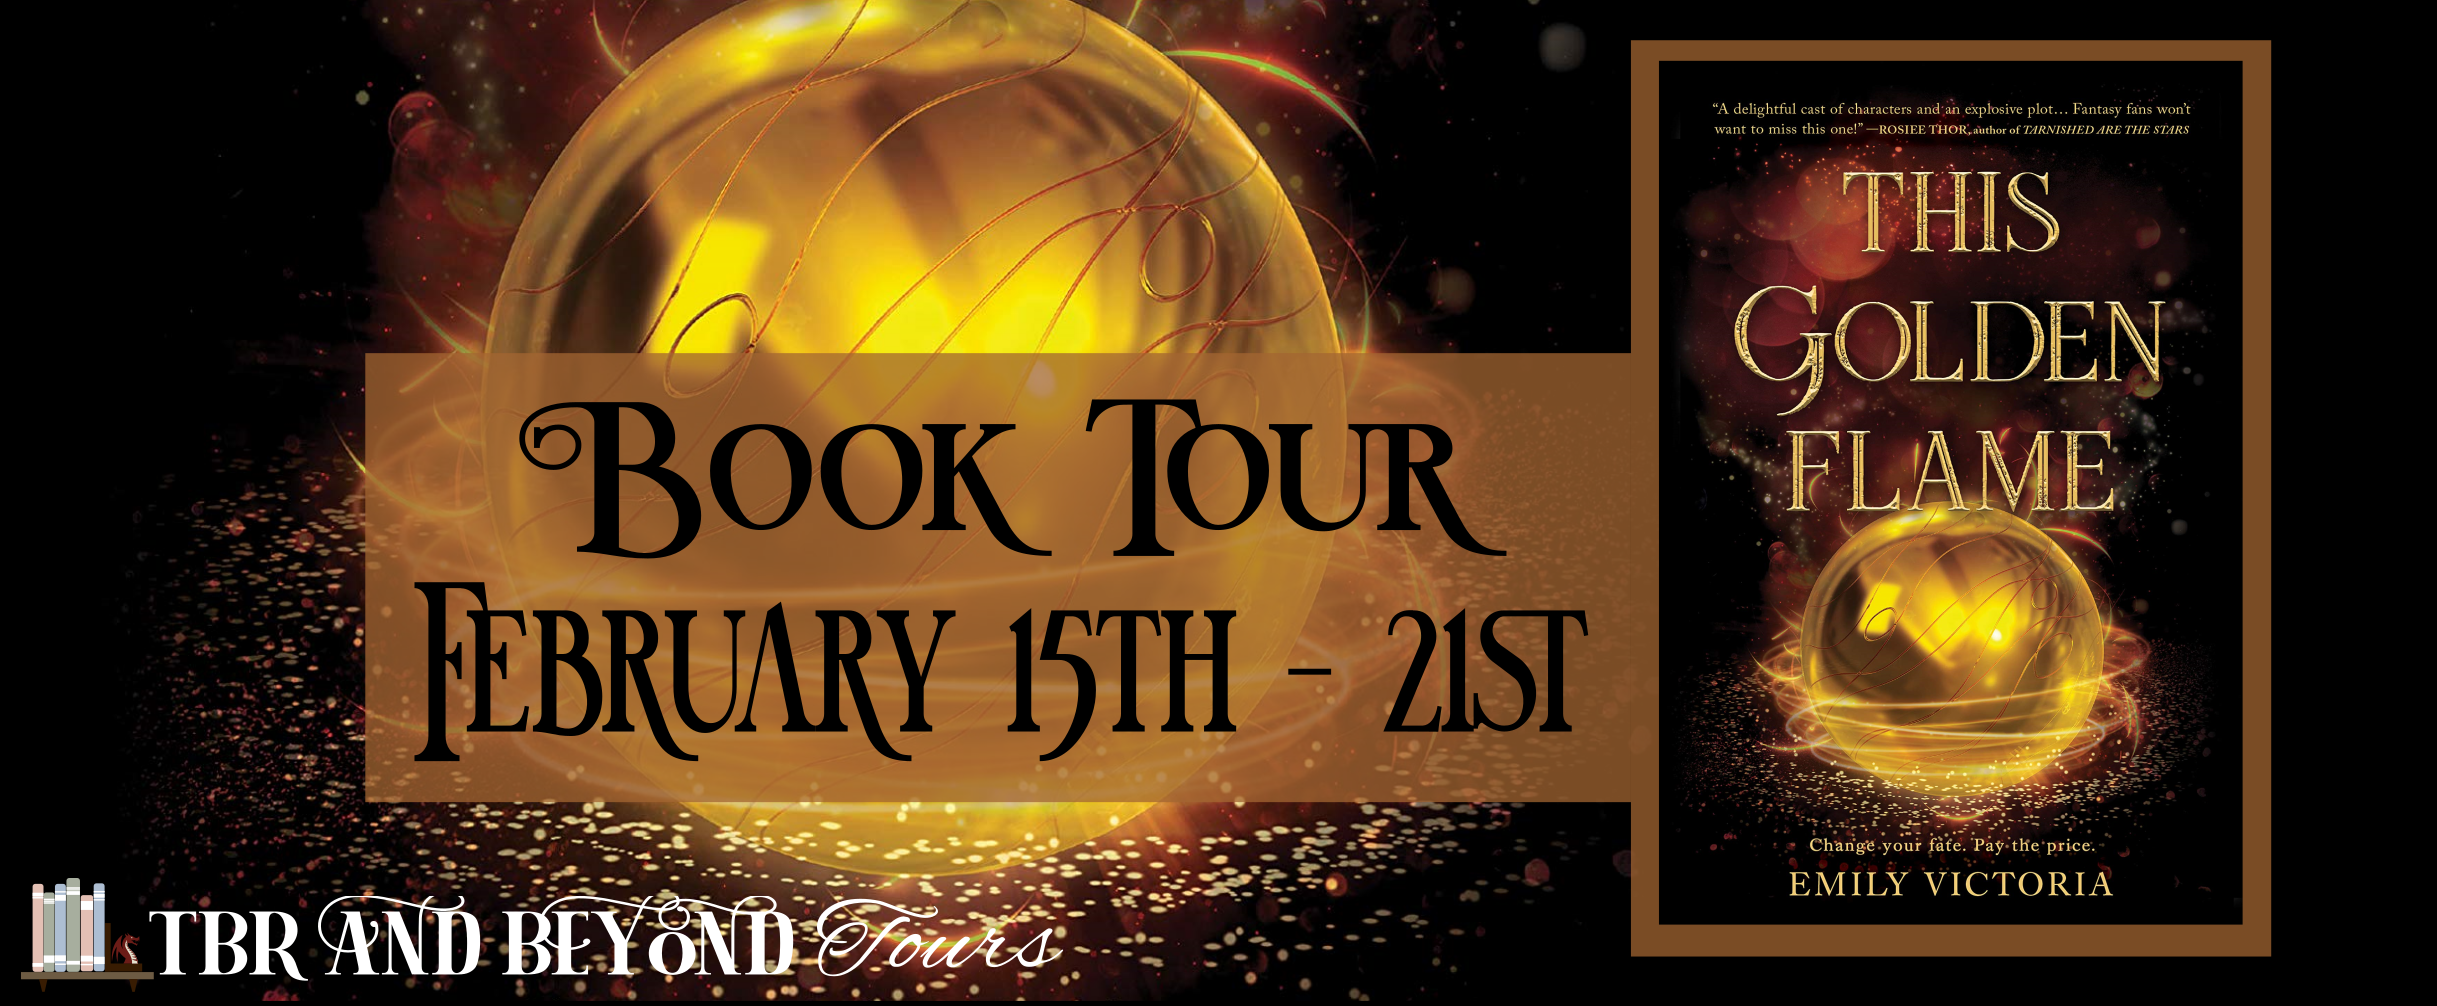 Blog Tour: This Golden Flame by Emily Victoria (Interview + Giveaway!)